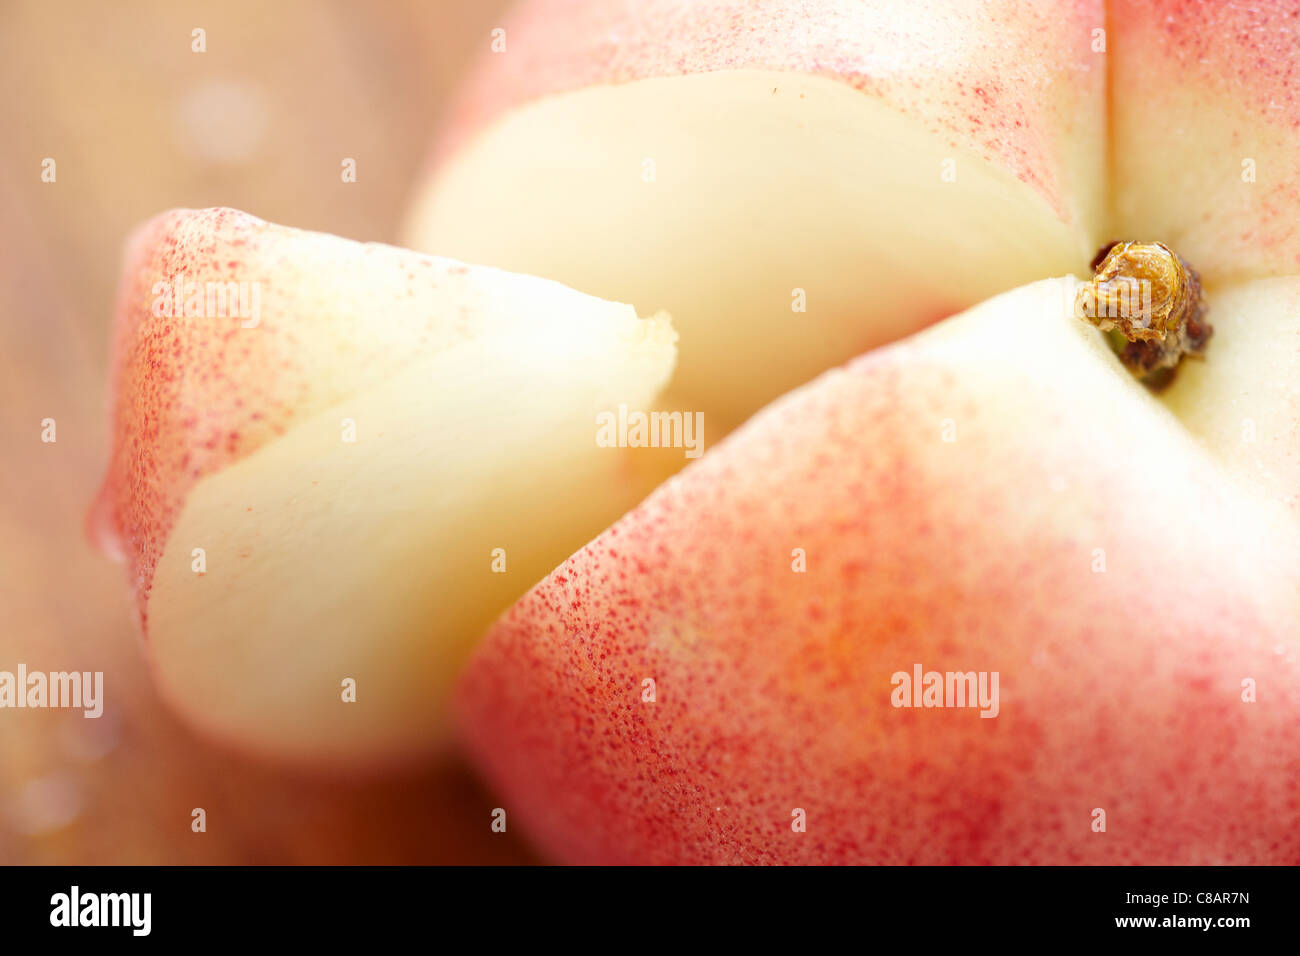 White peach - Stock Image